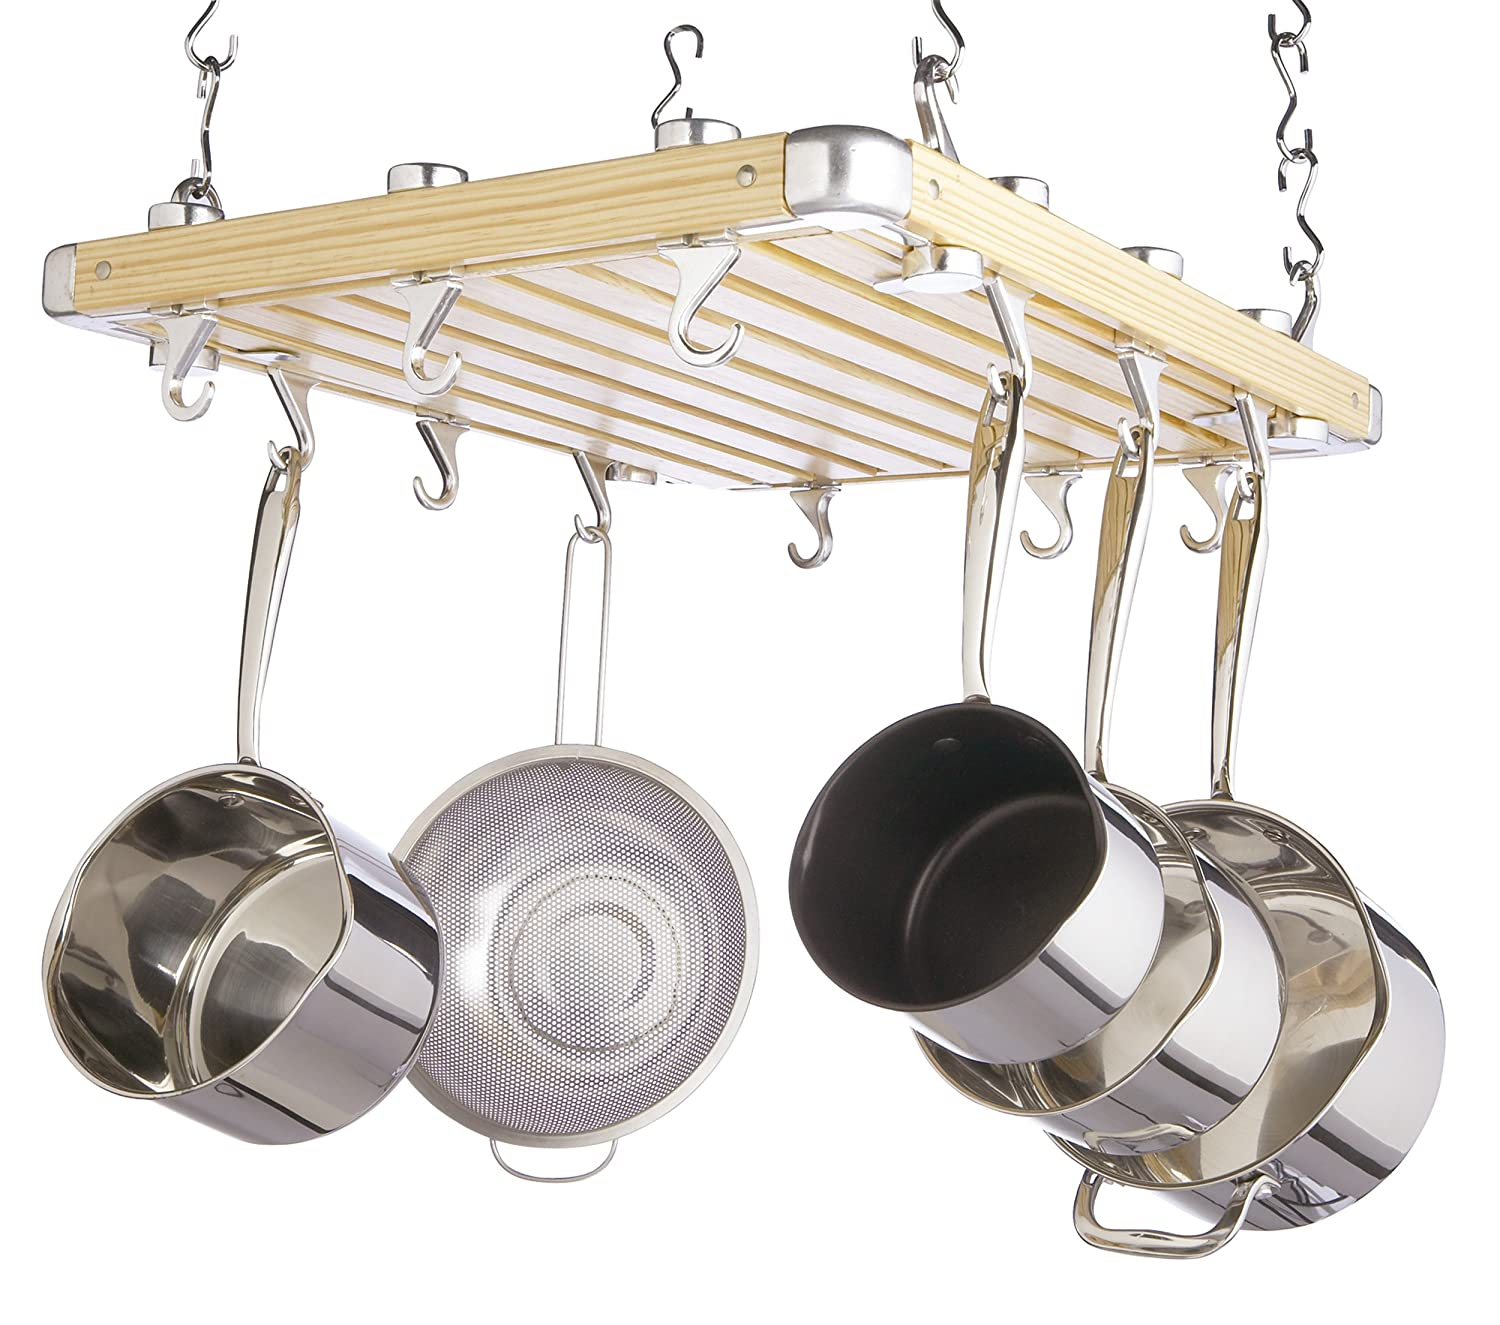 shaped hammered racks dp enclume steel pot rack kitchen decor classic ceiling com oval amazon dining